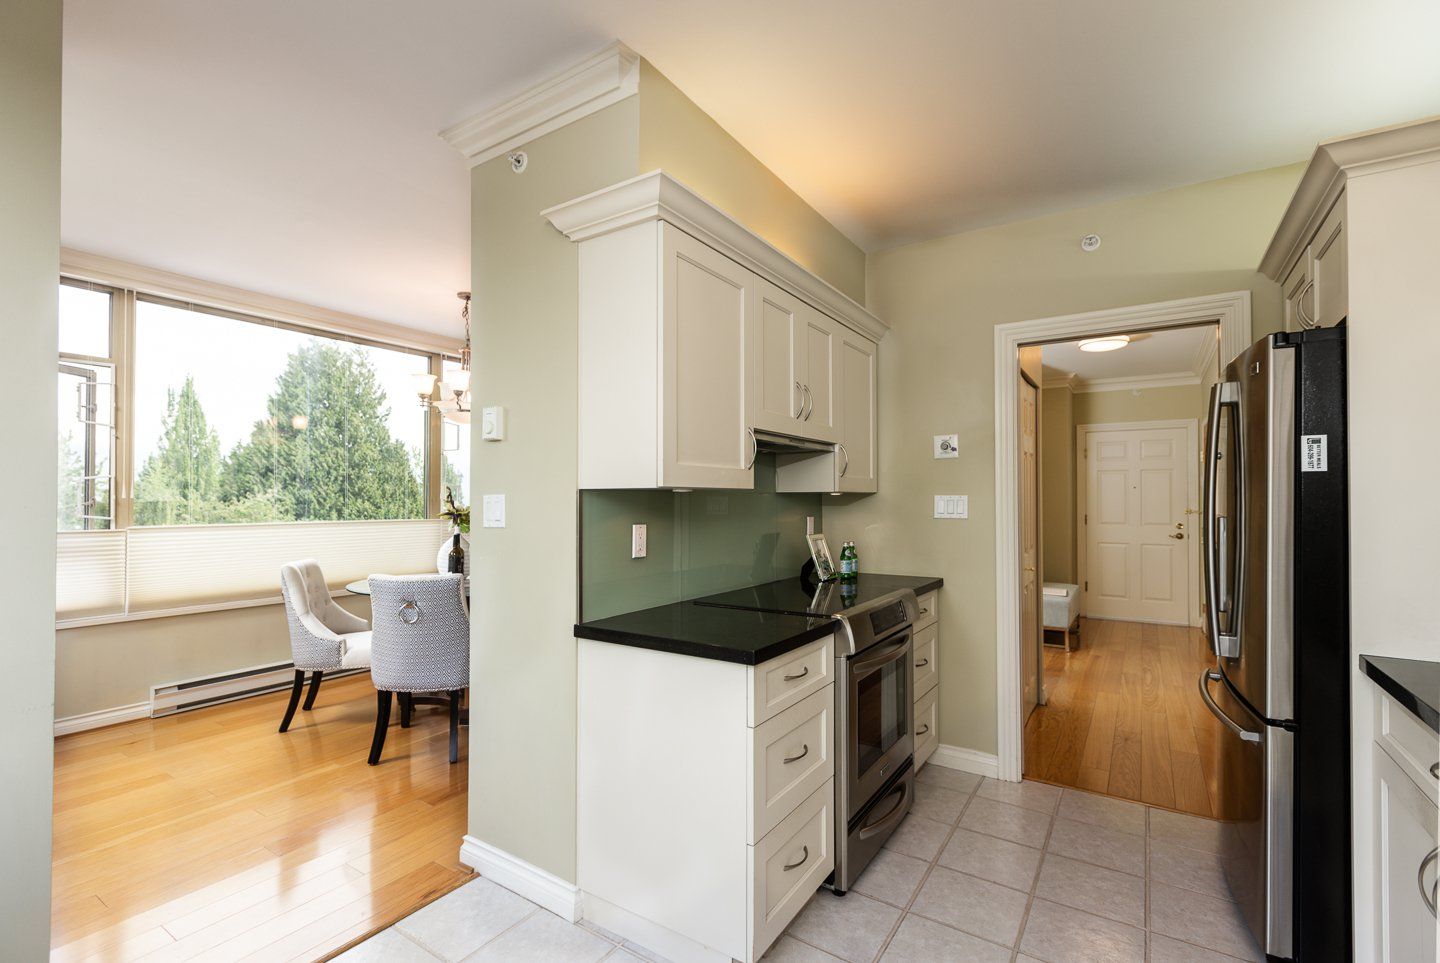 Photo 5: Photos: 401-2580 TOLMIE ST in VANCOUVER: Point Grey Condo for sale (Vancouver West)  : MLS®# R2397003